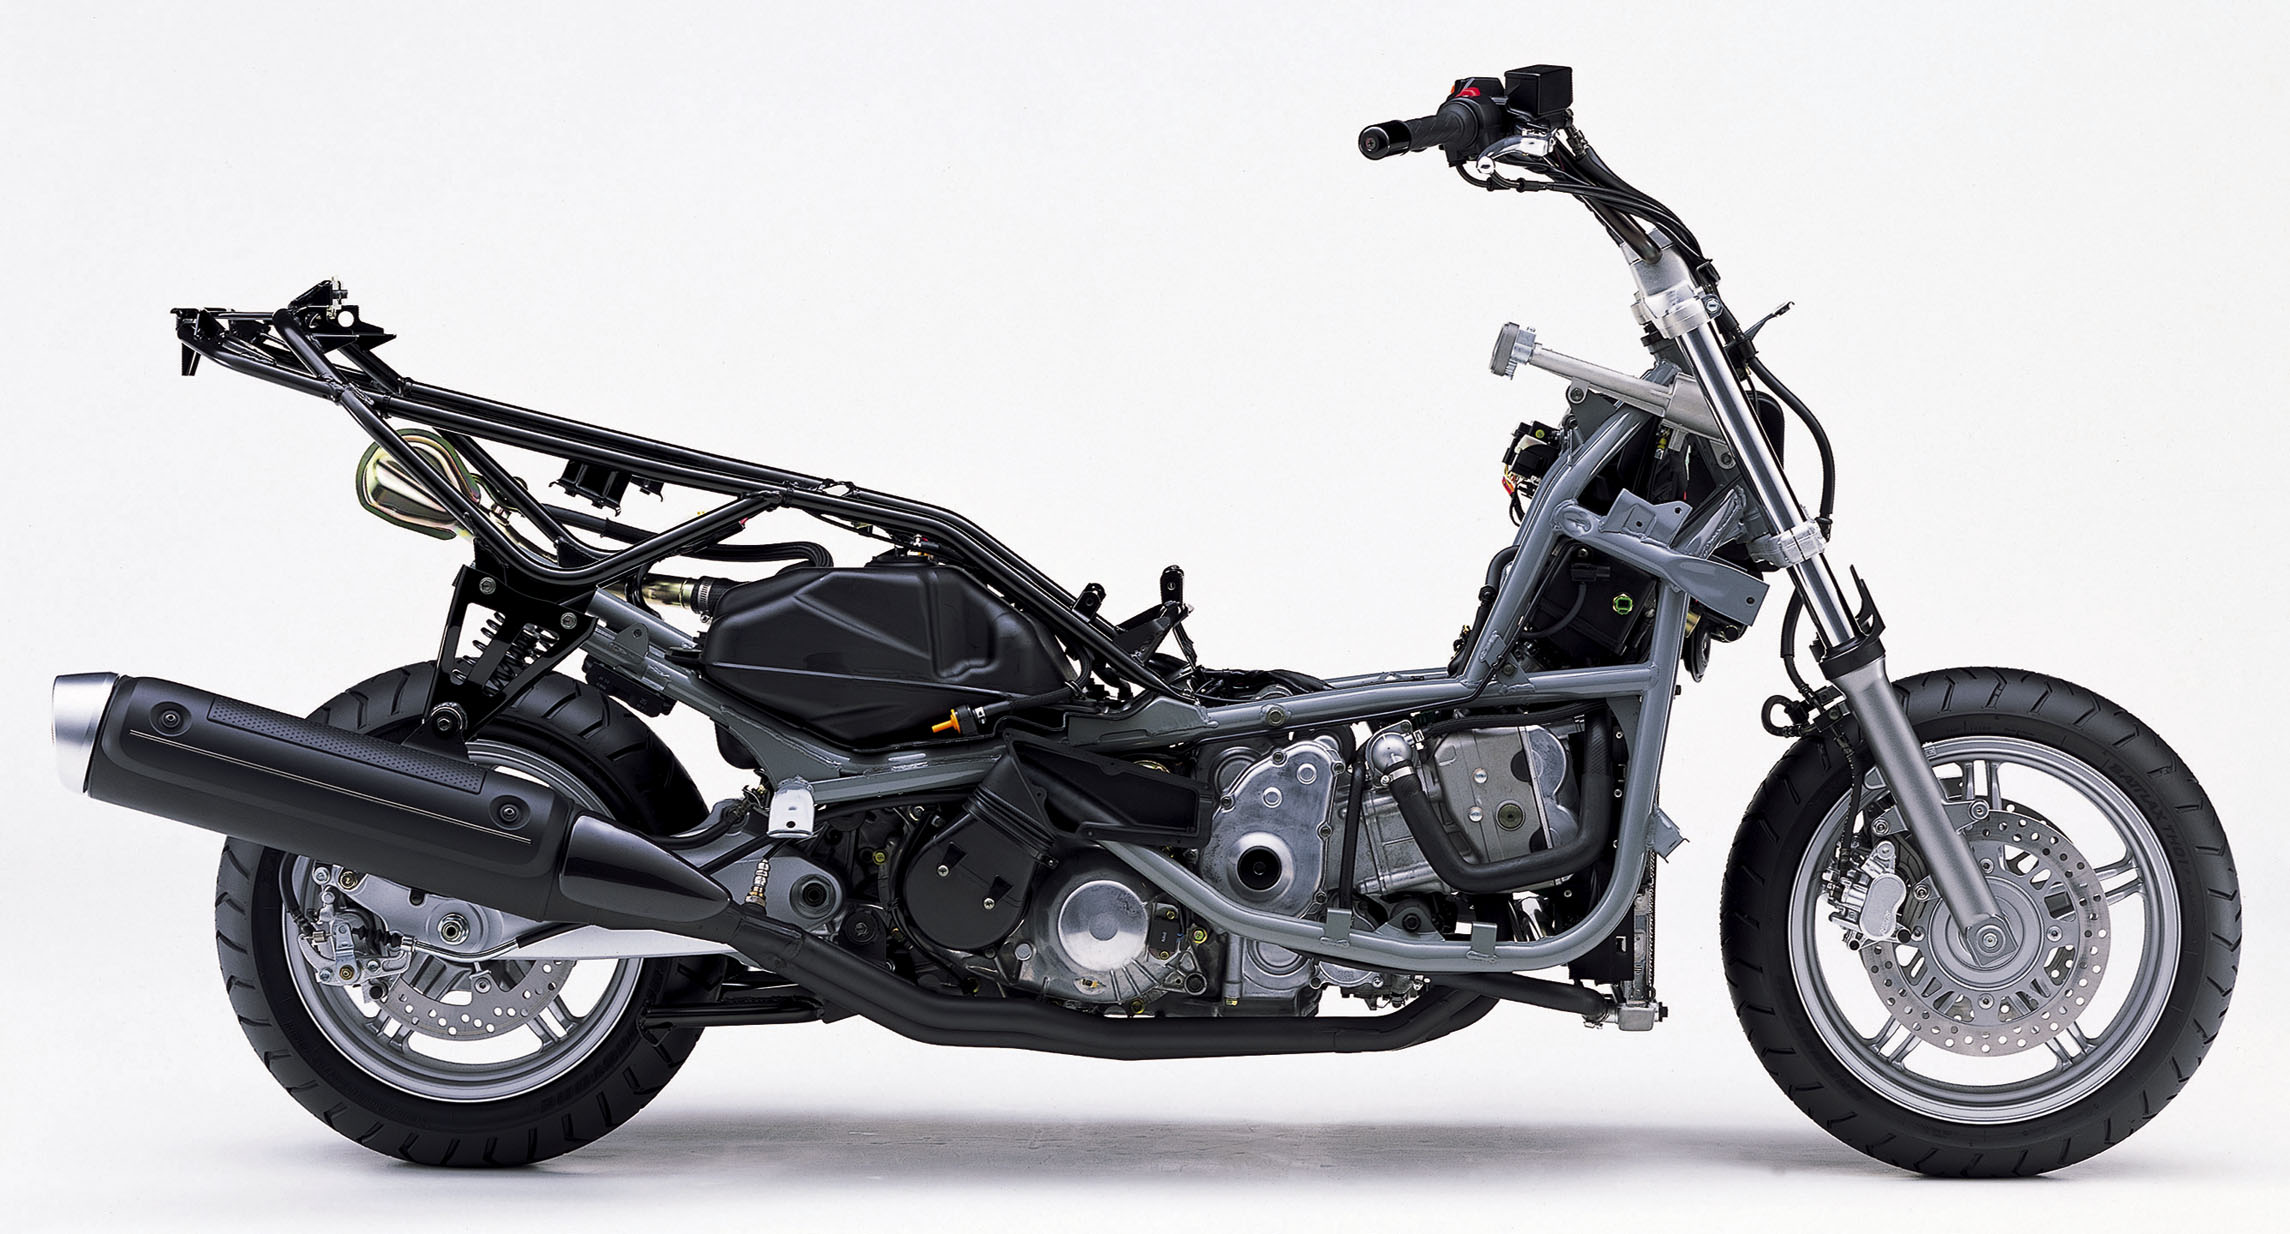 naked scooter community everything about scooters join the scooter community. Black Bedroom Furniture Sets. Home Design Ideas